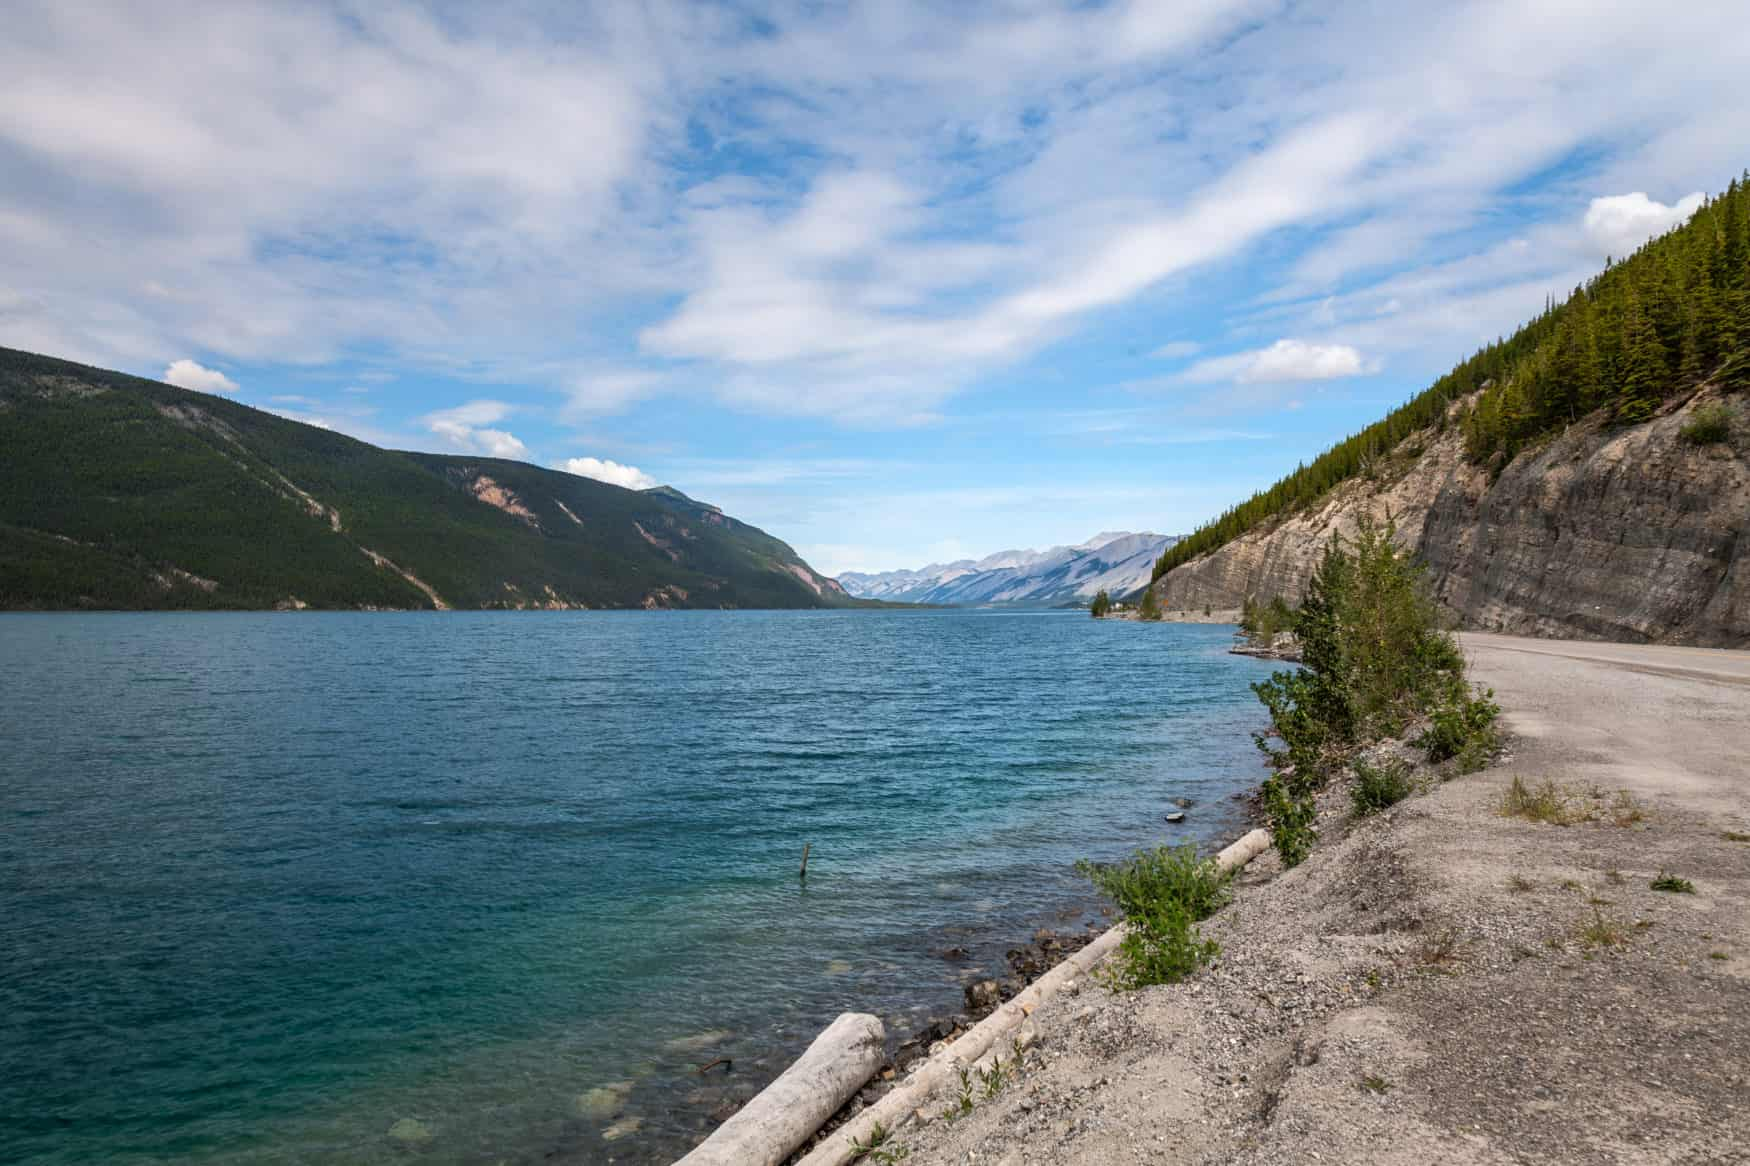 Muncho Lake am Alaska Highway in British Columbia, Kanada